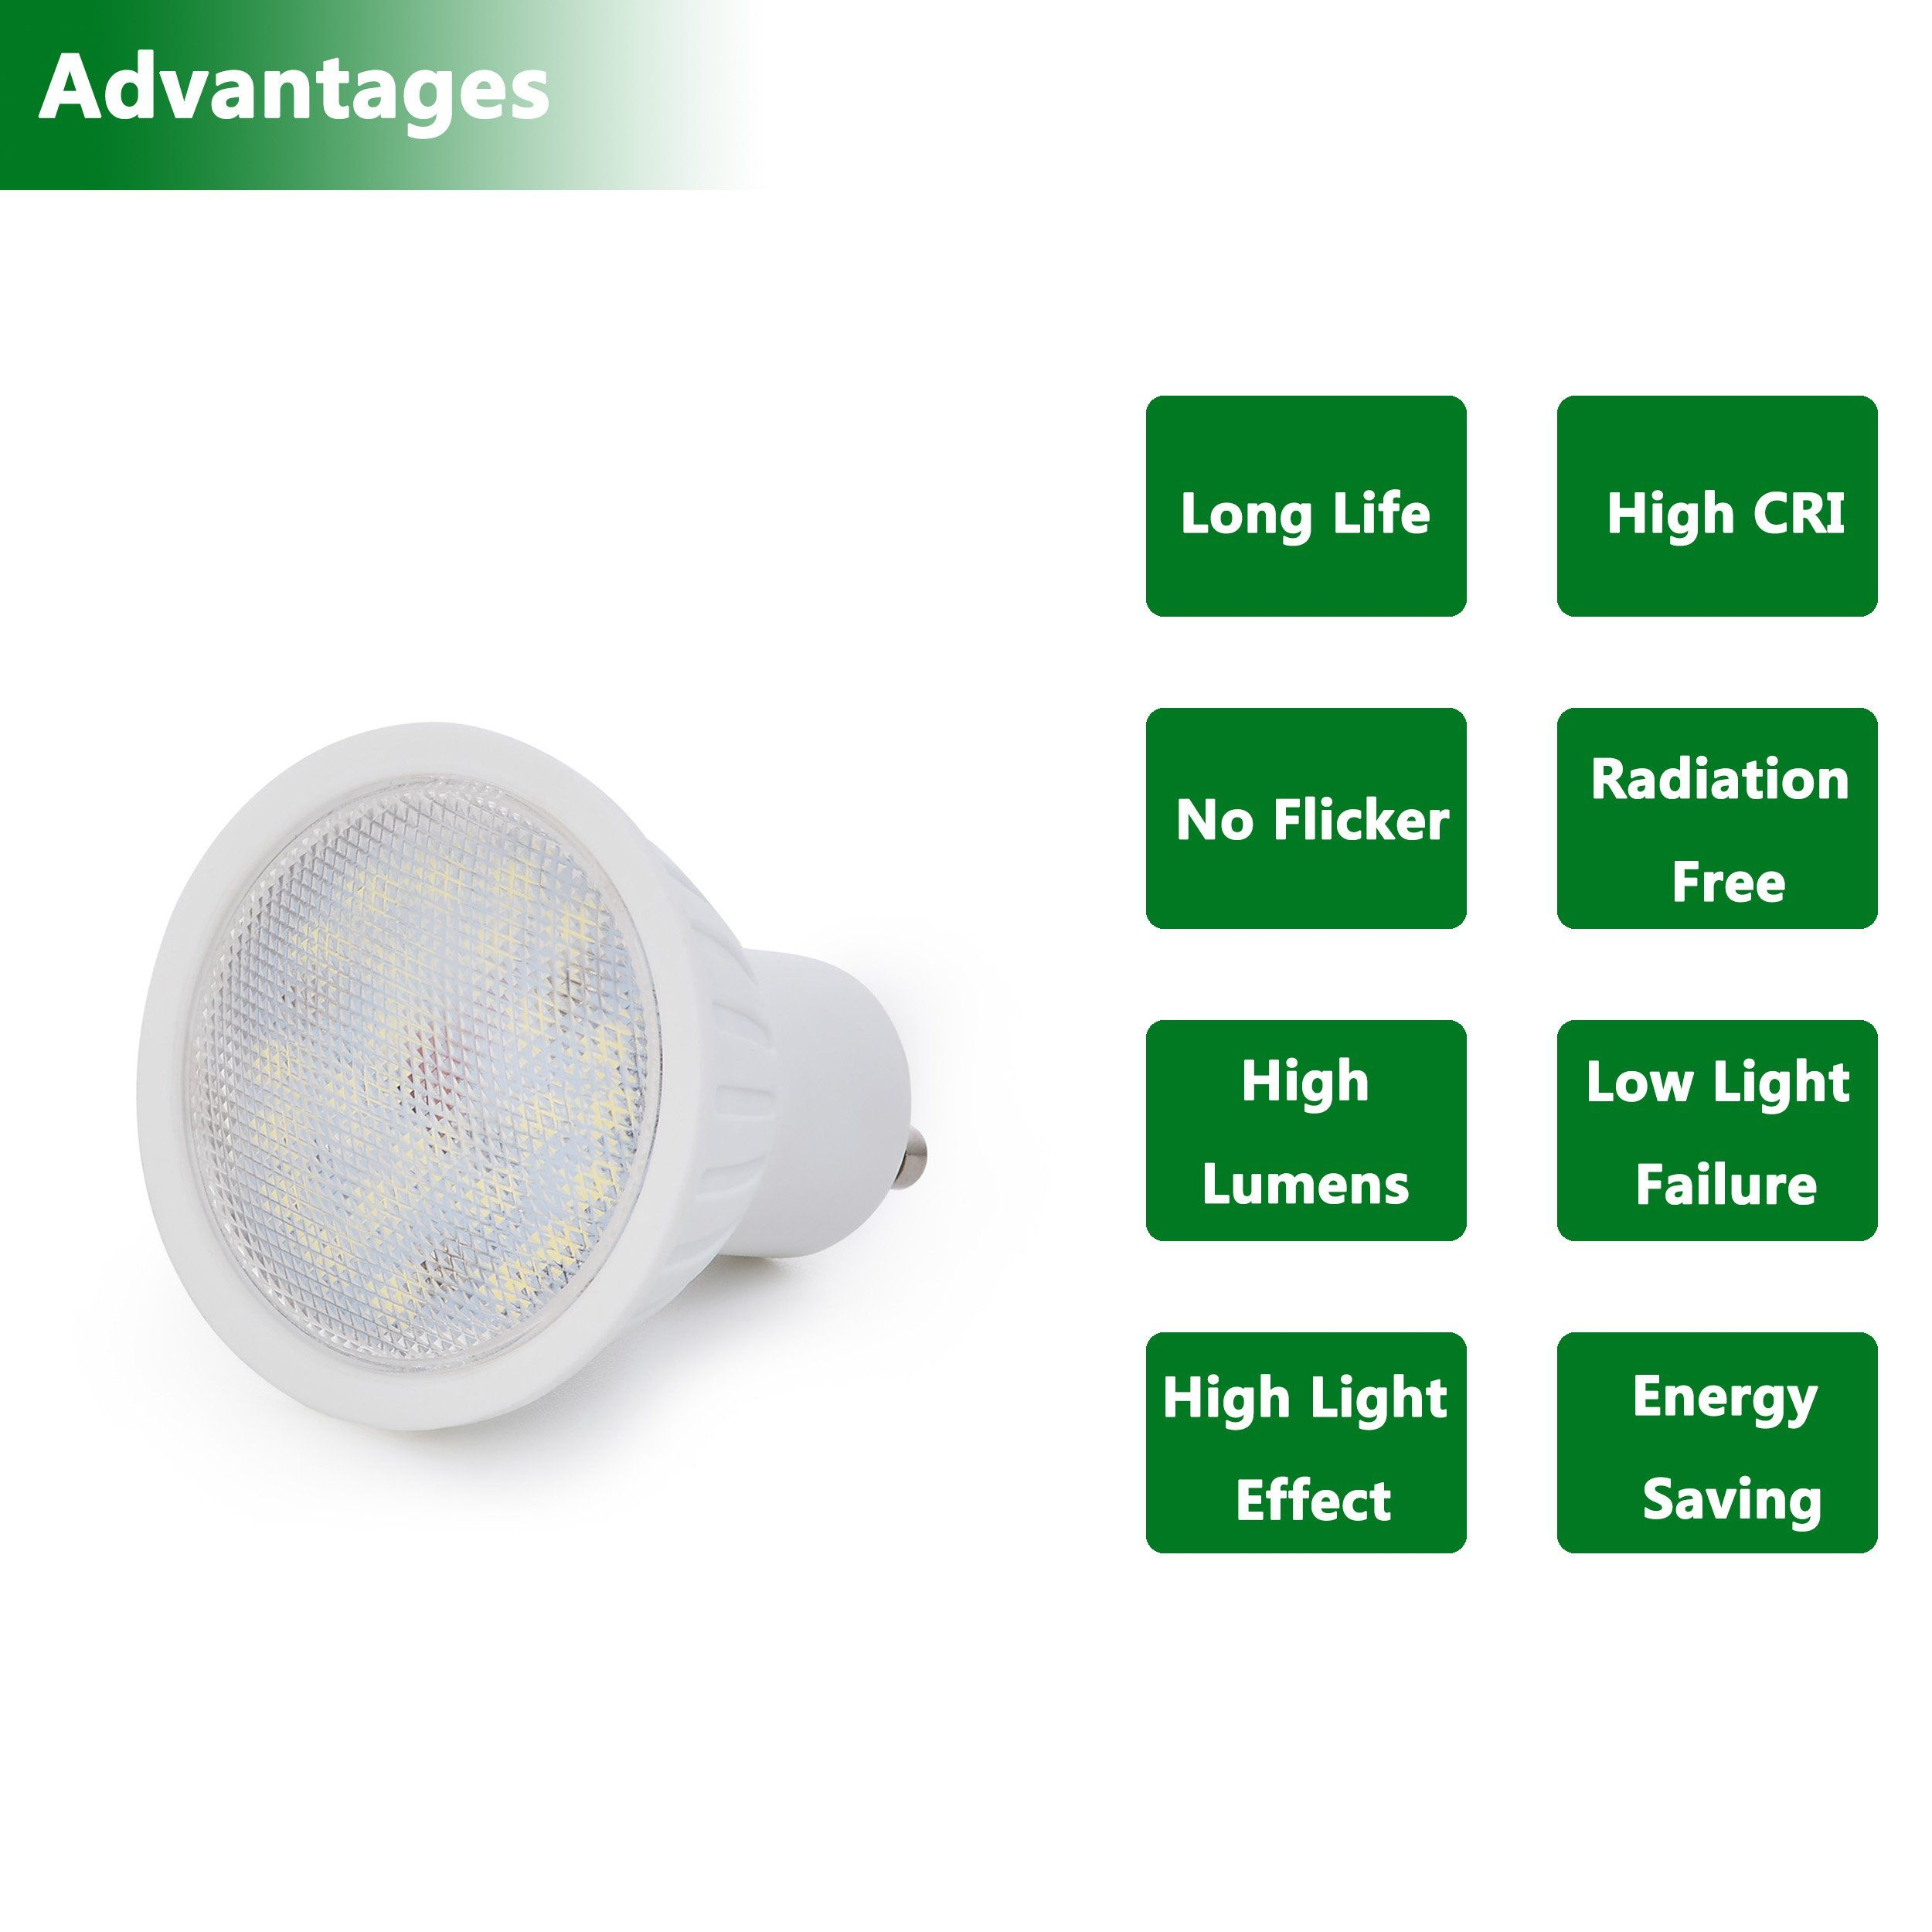 Gu10 Led Spot Lamp 5w 55w Replacement 4000k Natural White Gu10 120a Beam Angle Cri 85 120 Volt 500lm Spot Light Bulb Dimmab Light Energy Led Spot Light Bulb